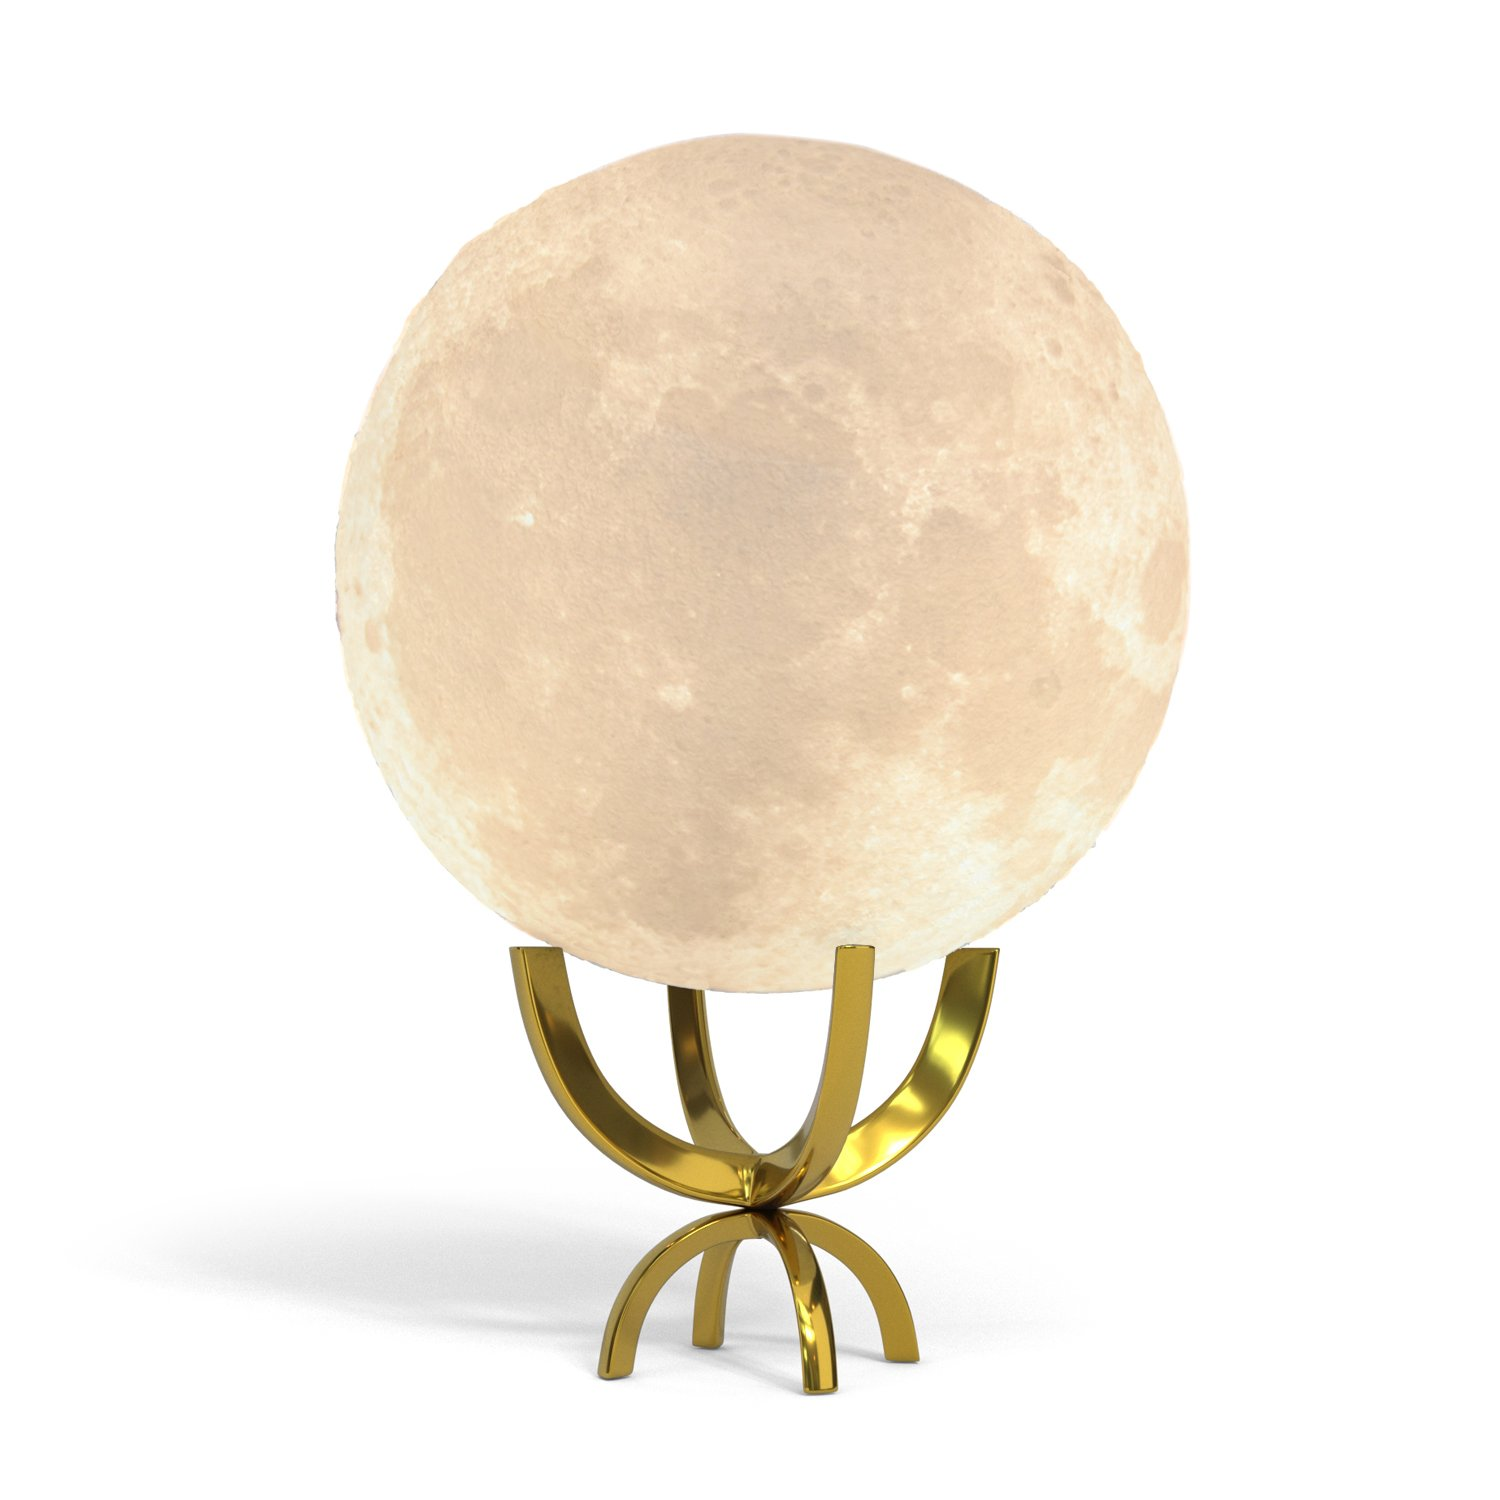 Moon Lamp 3d Printing LED Night Light With Elegant Metal Stand, Decorative Lunar Light, Unique Baby Shower Gift or Gift for Kids, (12cm)4.7in Moon, Touch Control and Rechargeable by lil hoots (Gold)